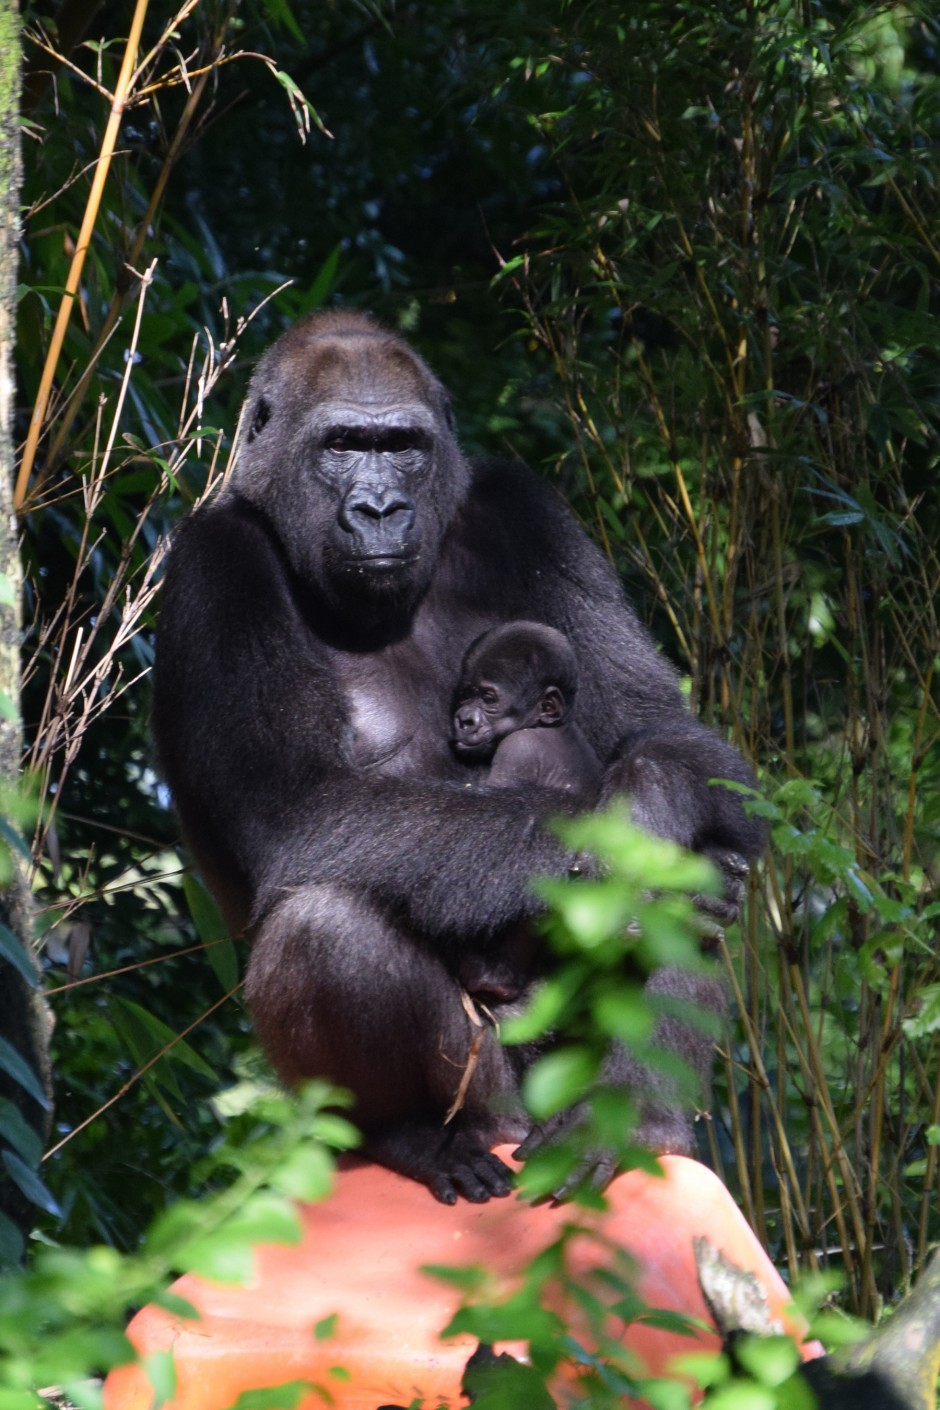 Family Photo: Second Baby in Month Born to Endangered Gorilla Family at Disney's Animal Kingdom